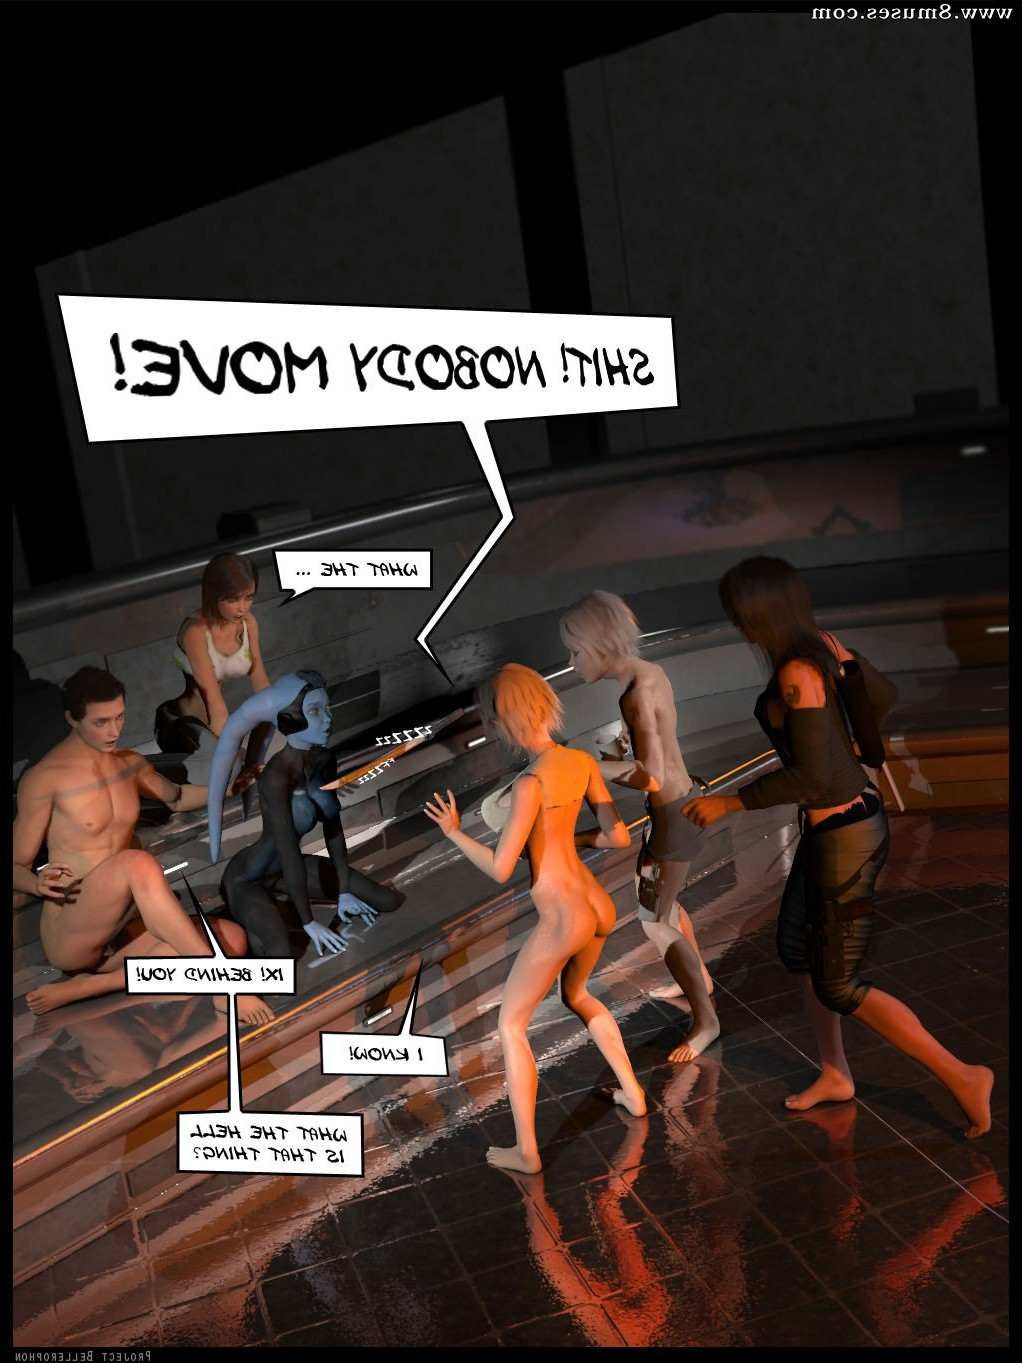 project-bellerophon-comics/18-Shadows-and-Dust 18-Shadows_and_Dust__8muses_-_Sex_and_Porn_Comics_24.jpg